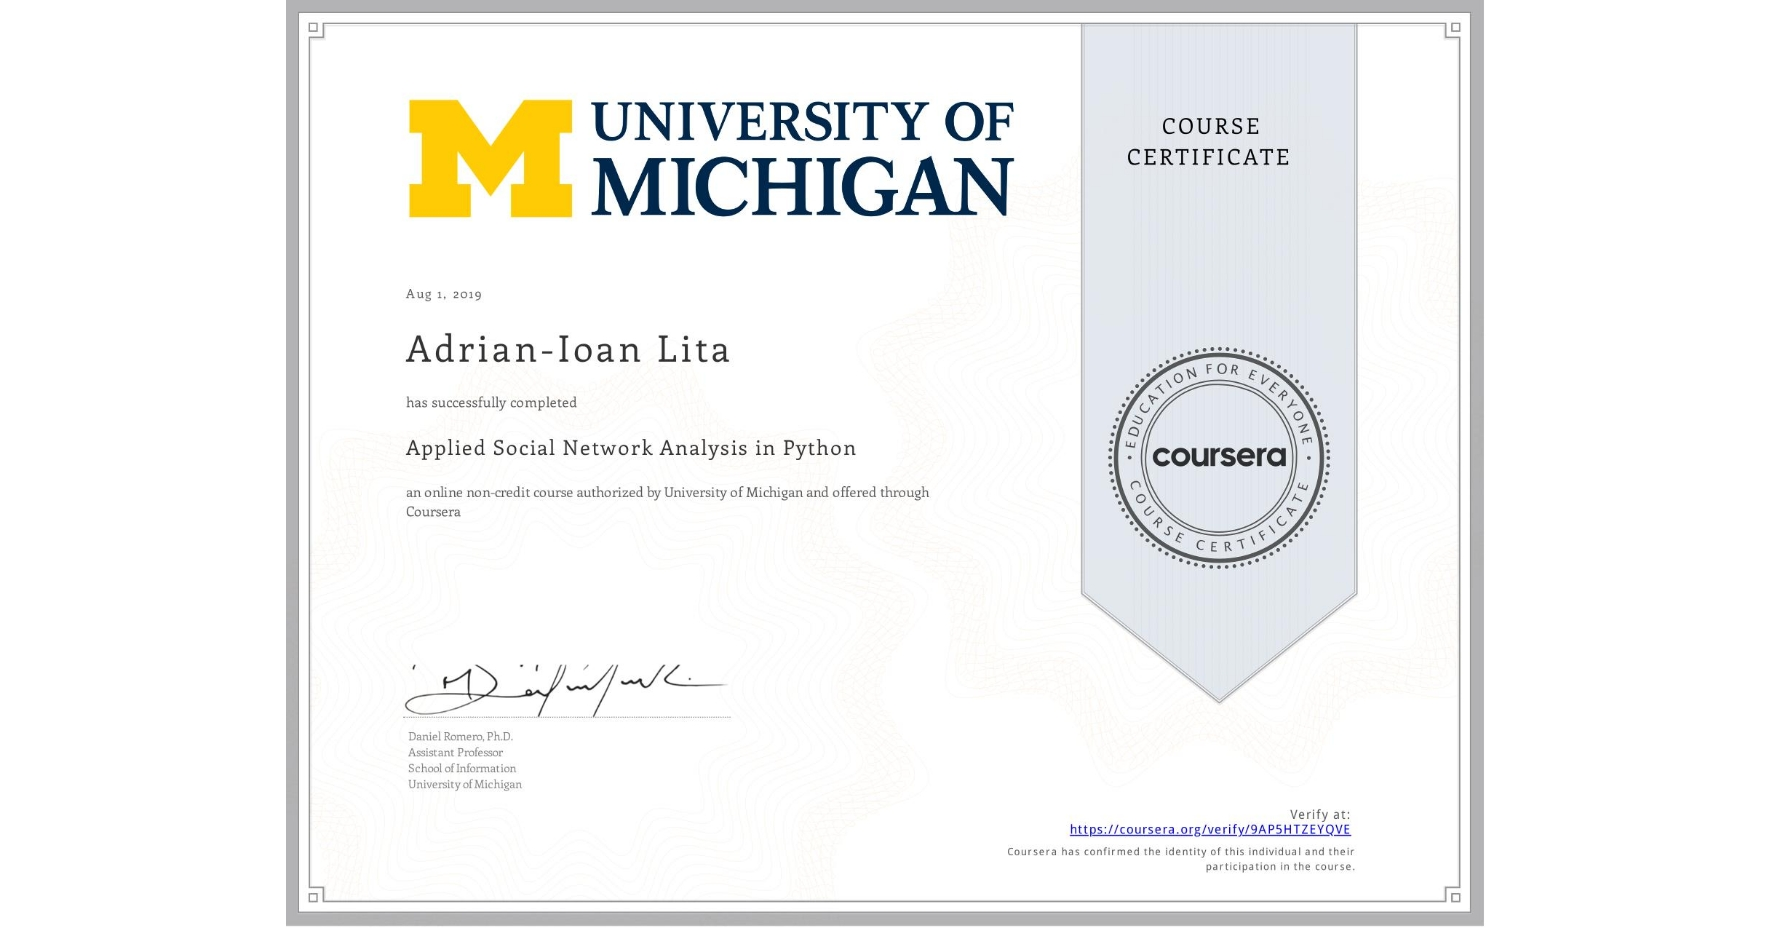 View certificate for Adrian-Ioan Lita, Applied Social Network Analysis in Python, an online non-credit course authorized by University of Michigan and offered through Coursera